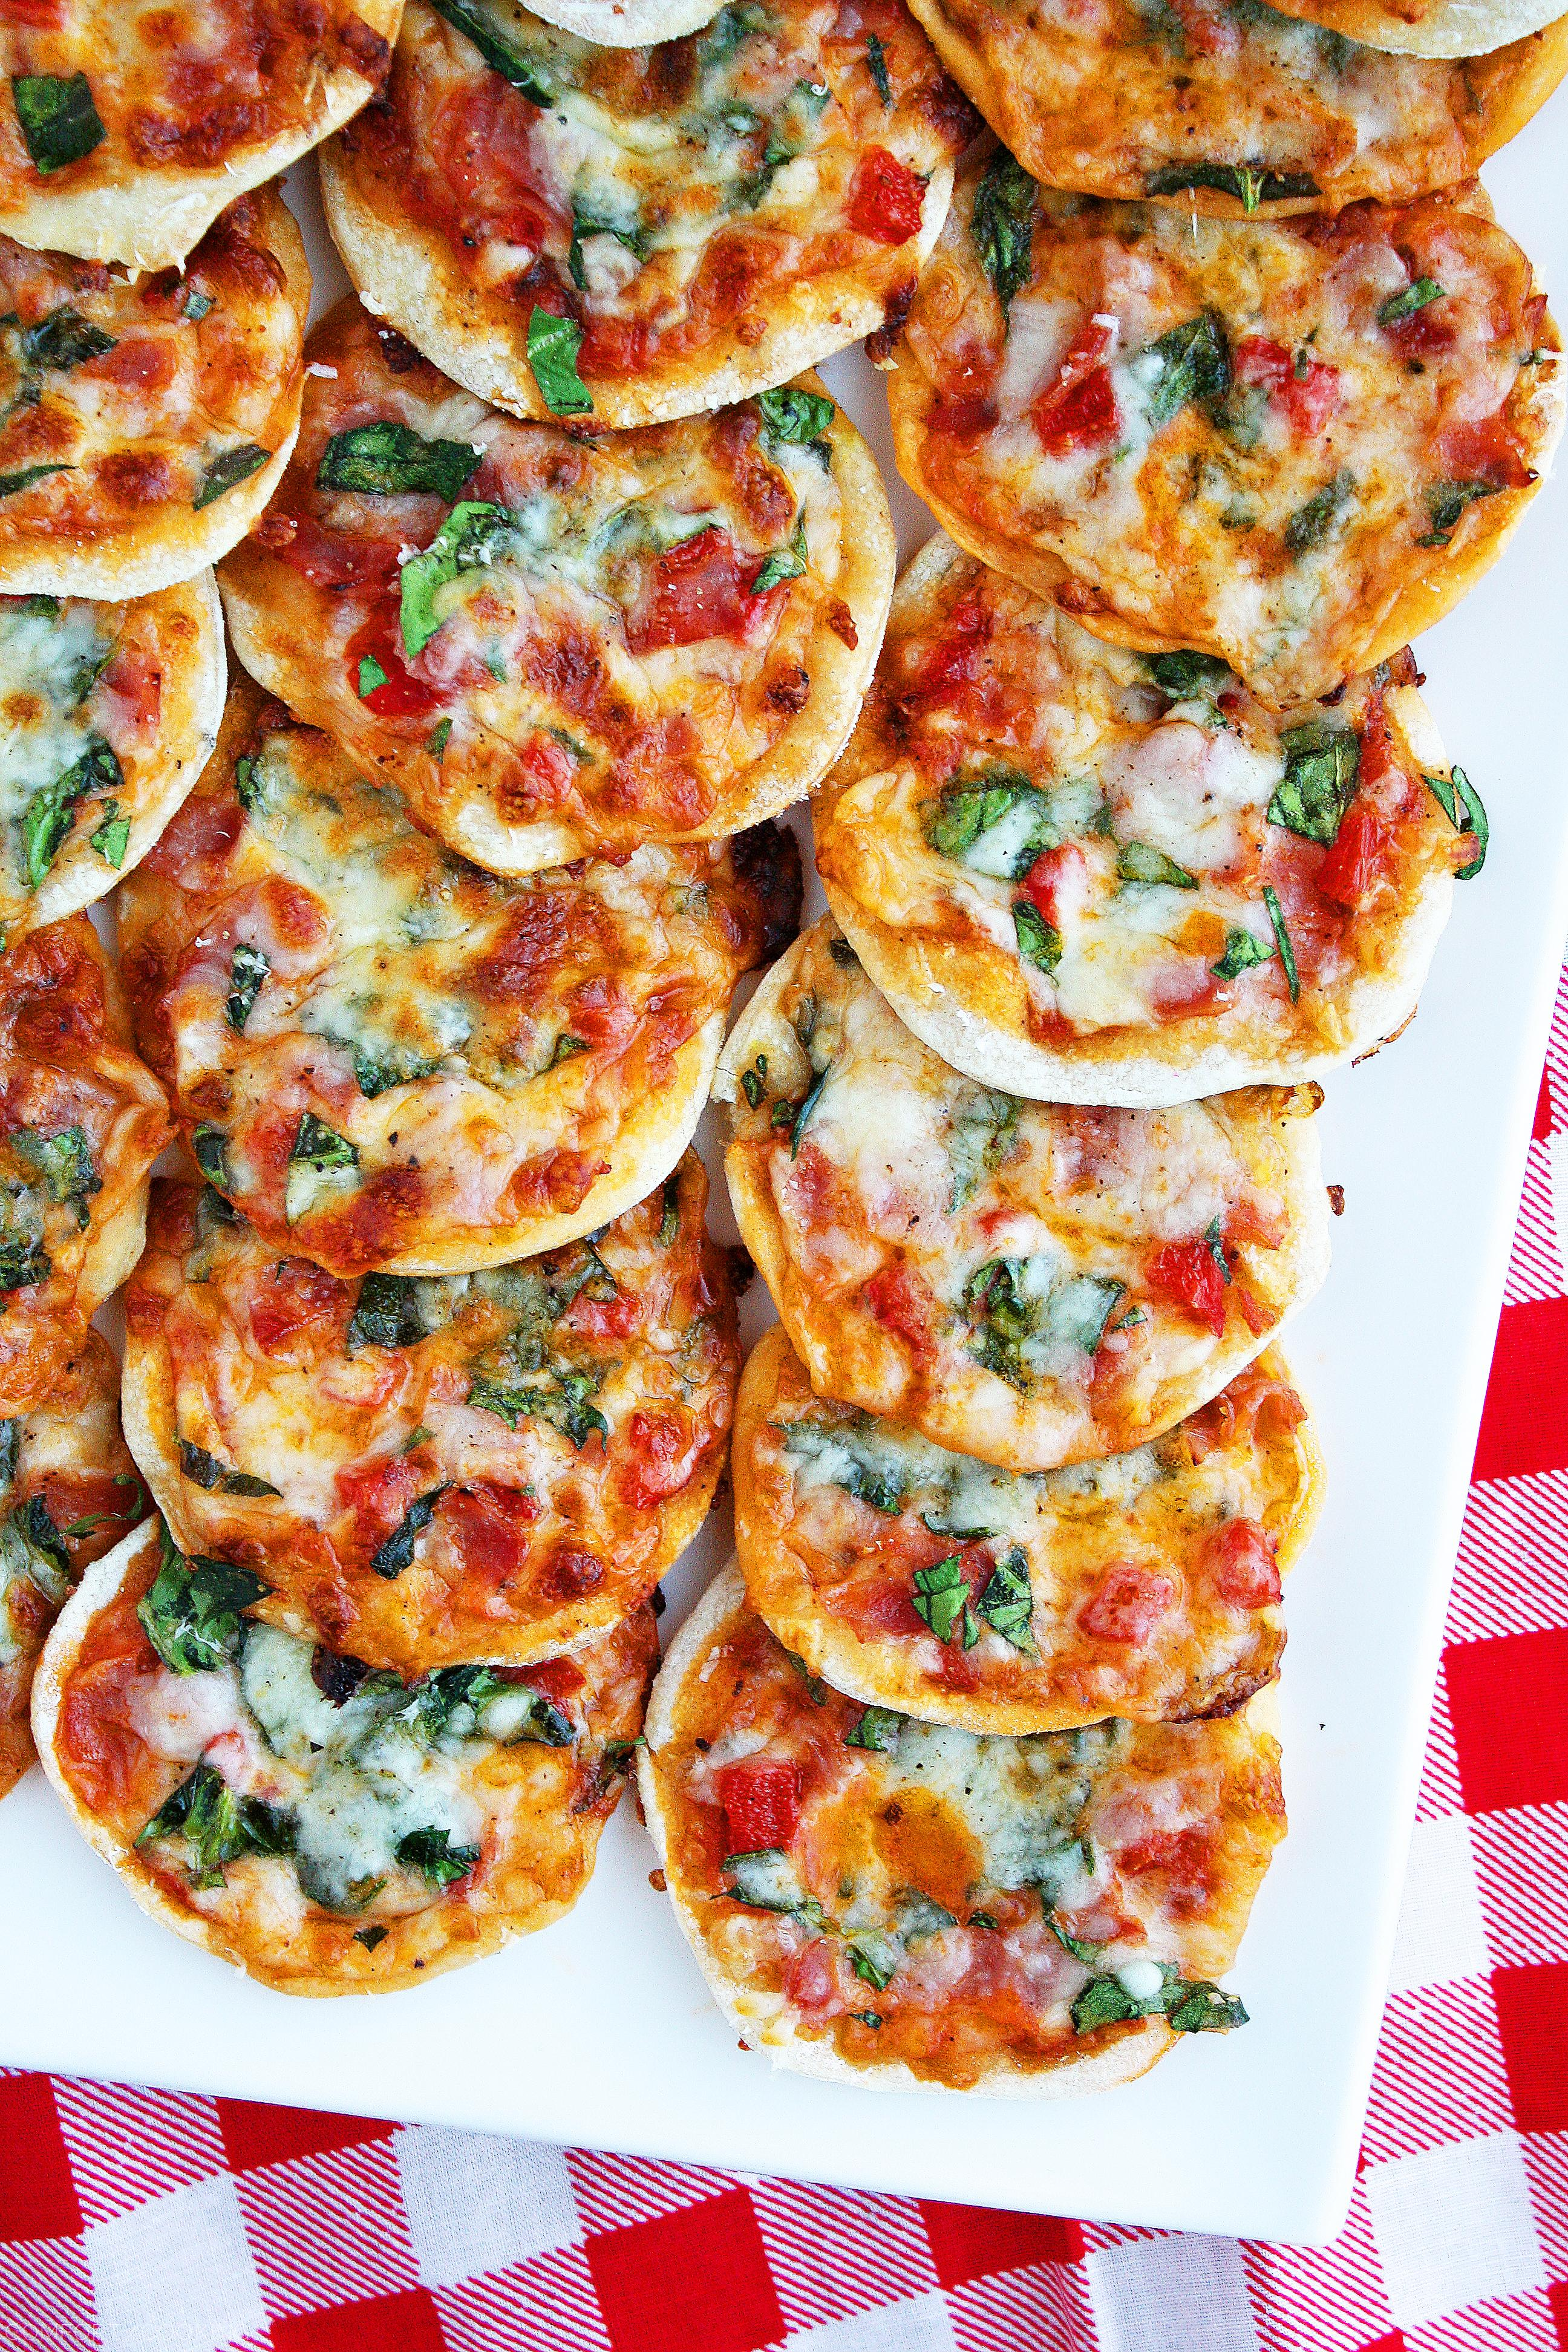 Make Your Own Mini Pizzas Homemade Pizza Dough The